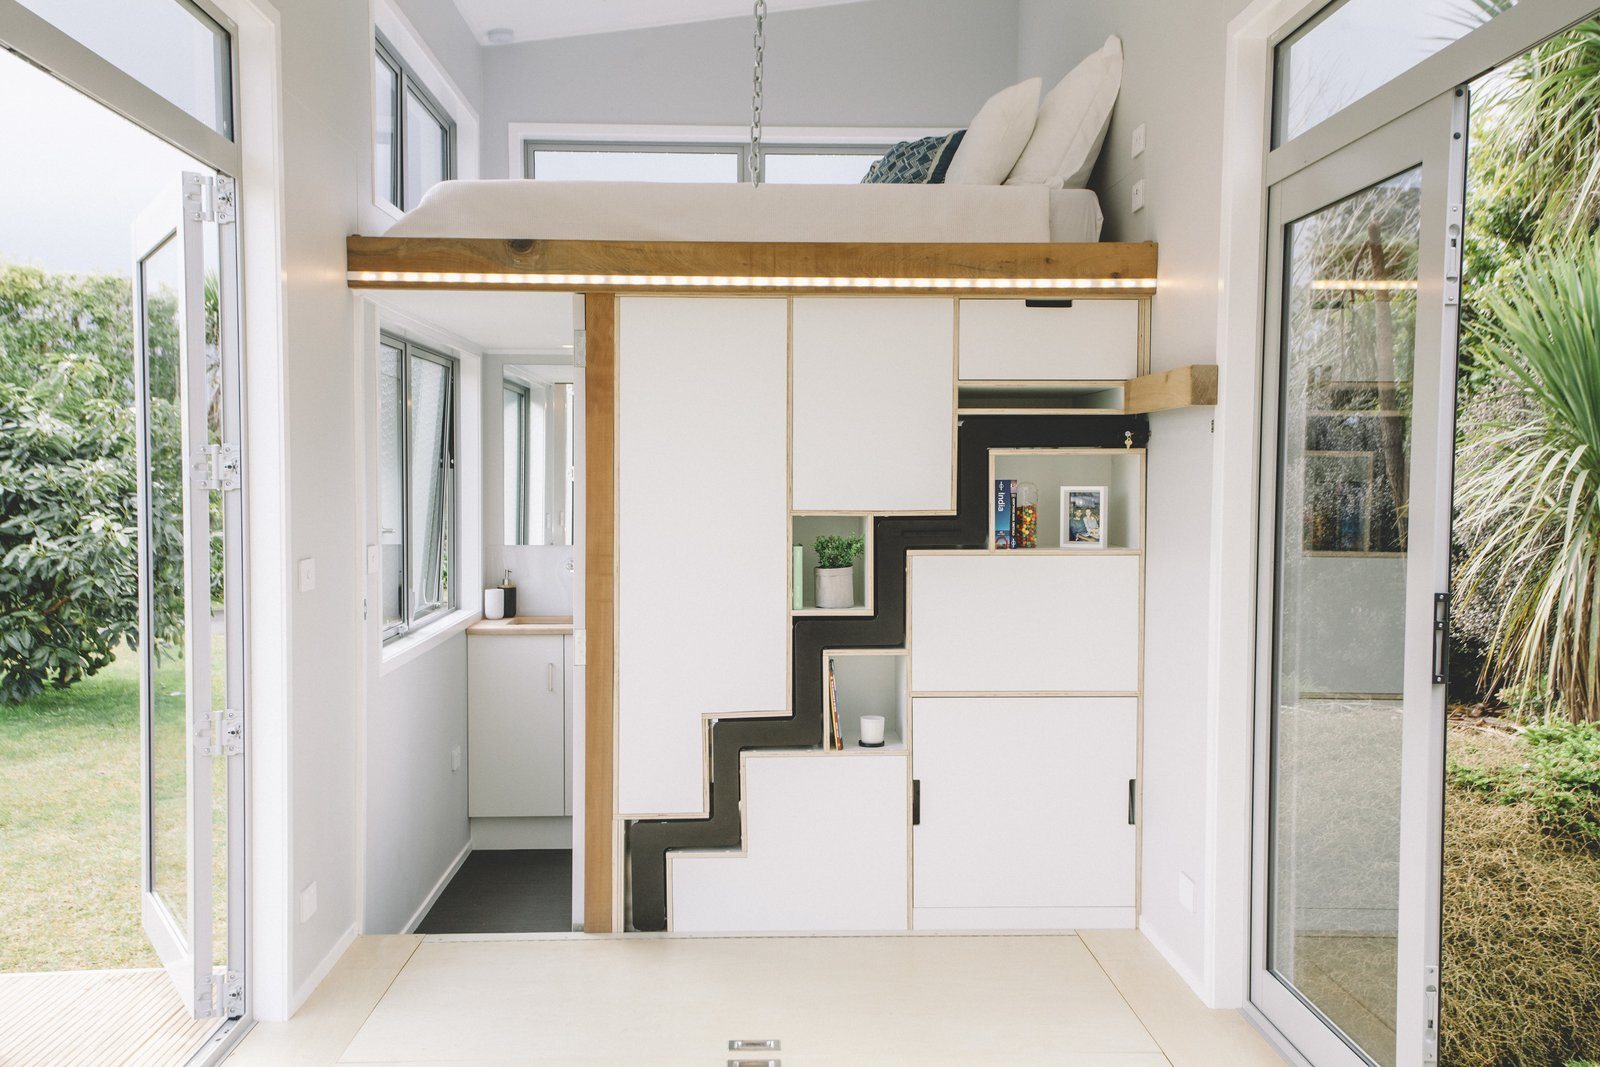 Millennial Tiny House interior staircase